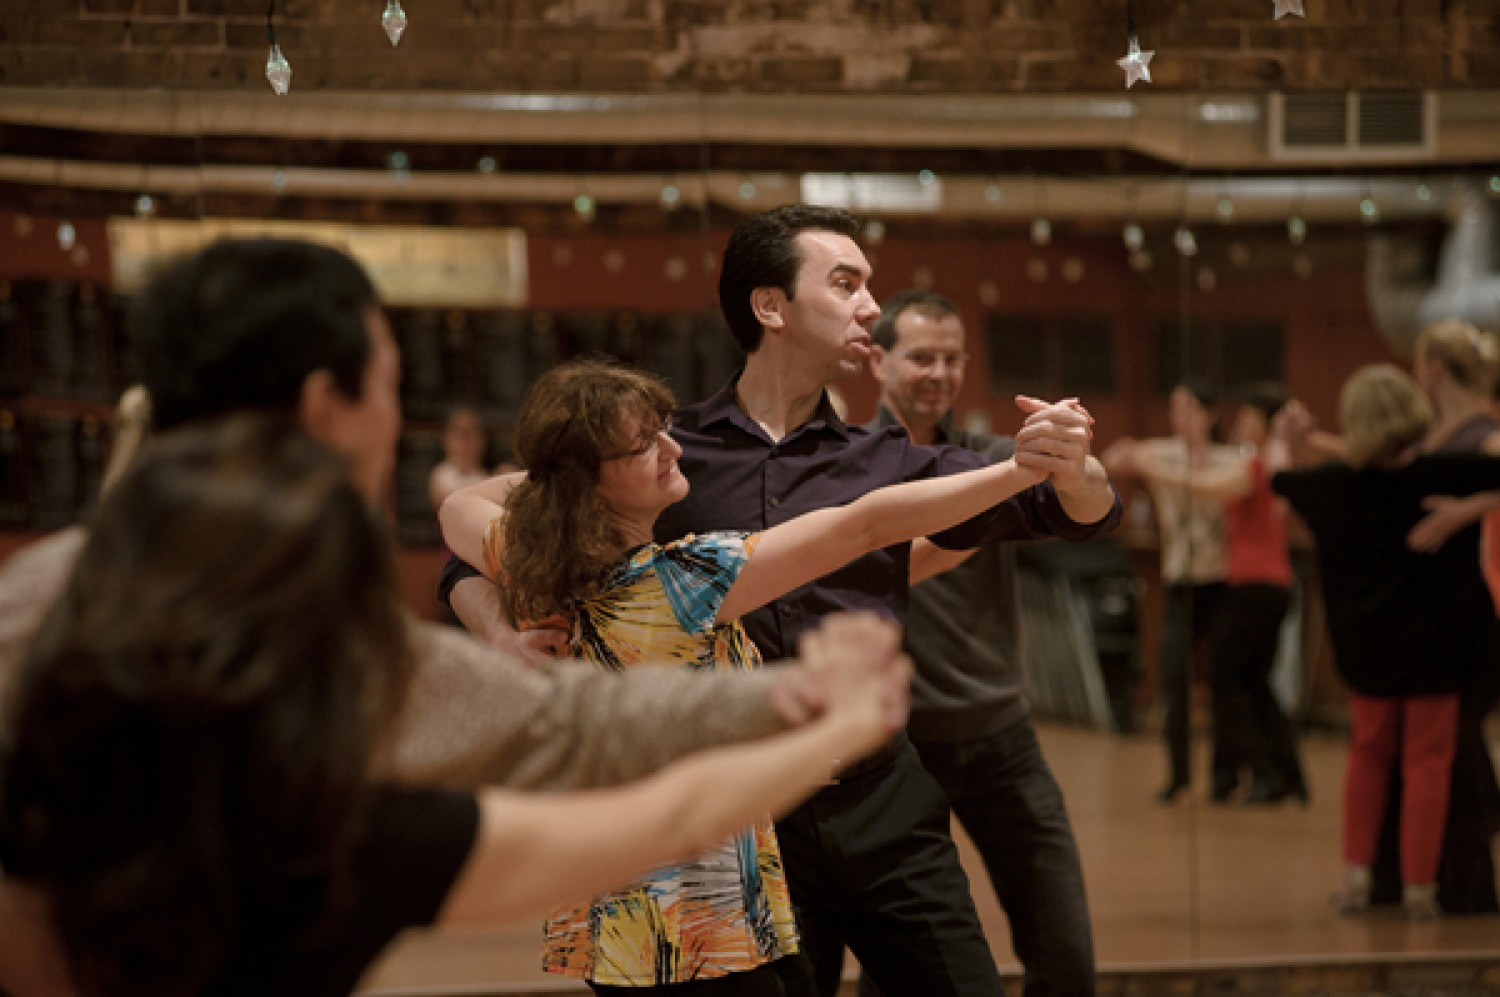 salsa dance research paper Telstra provides telecommunications solutions including network, cloud services,  data hosting, cloud, colocation, conferencing & satellite services.